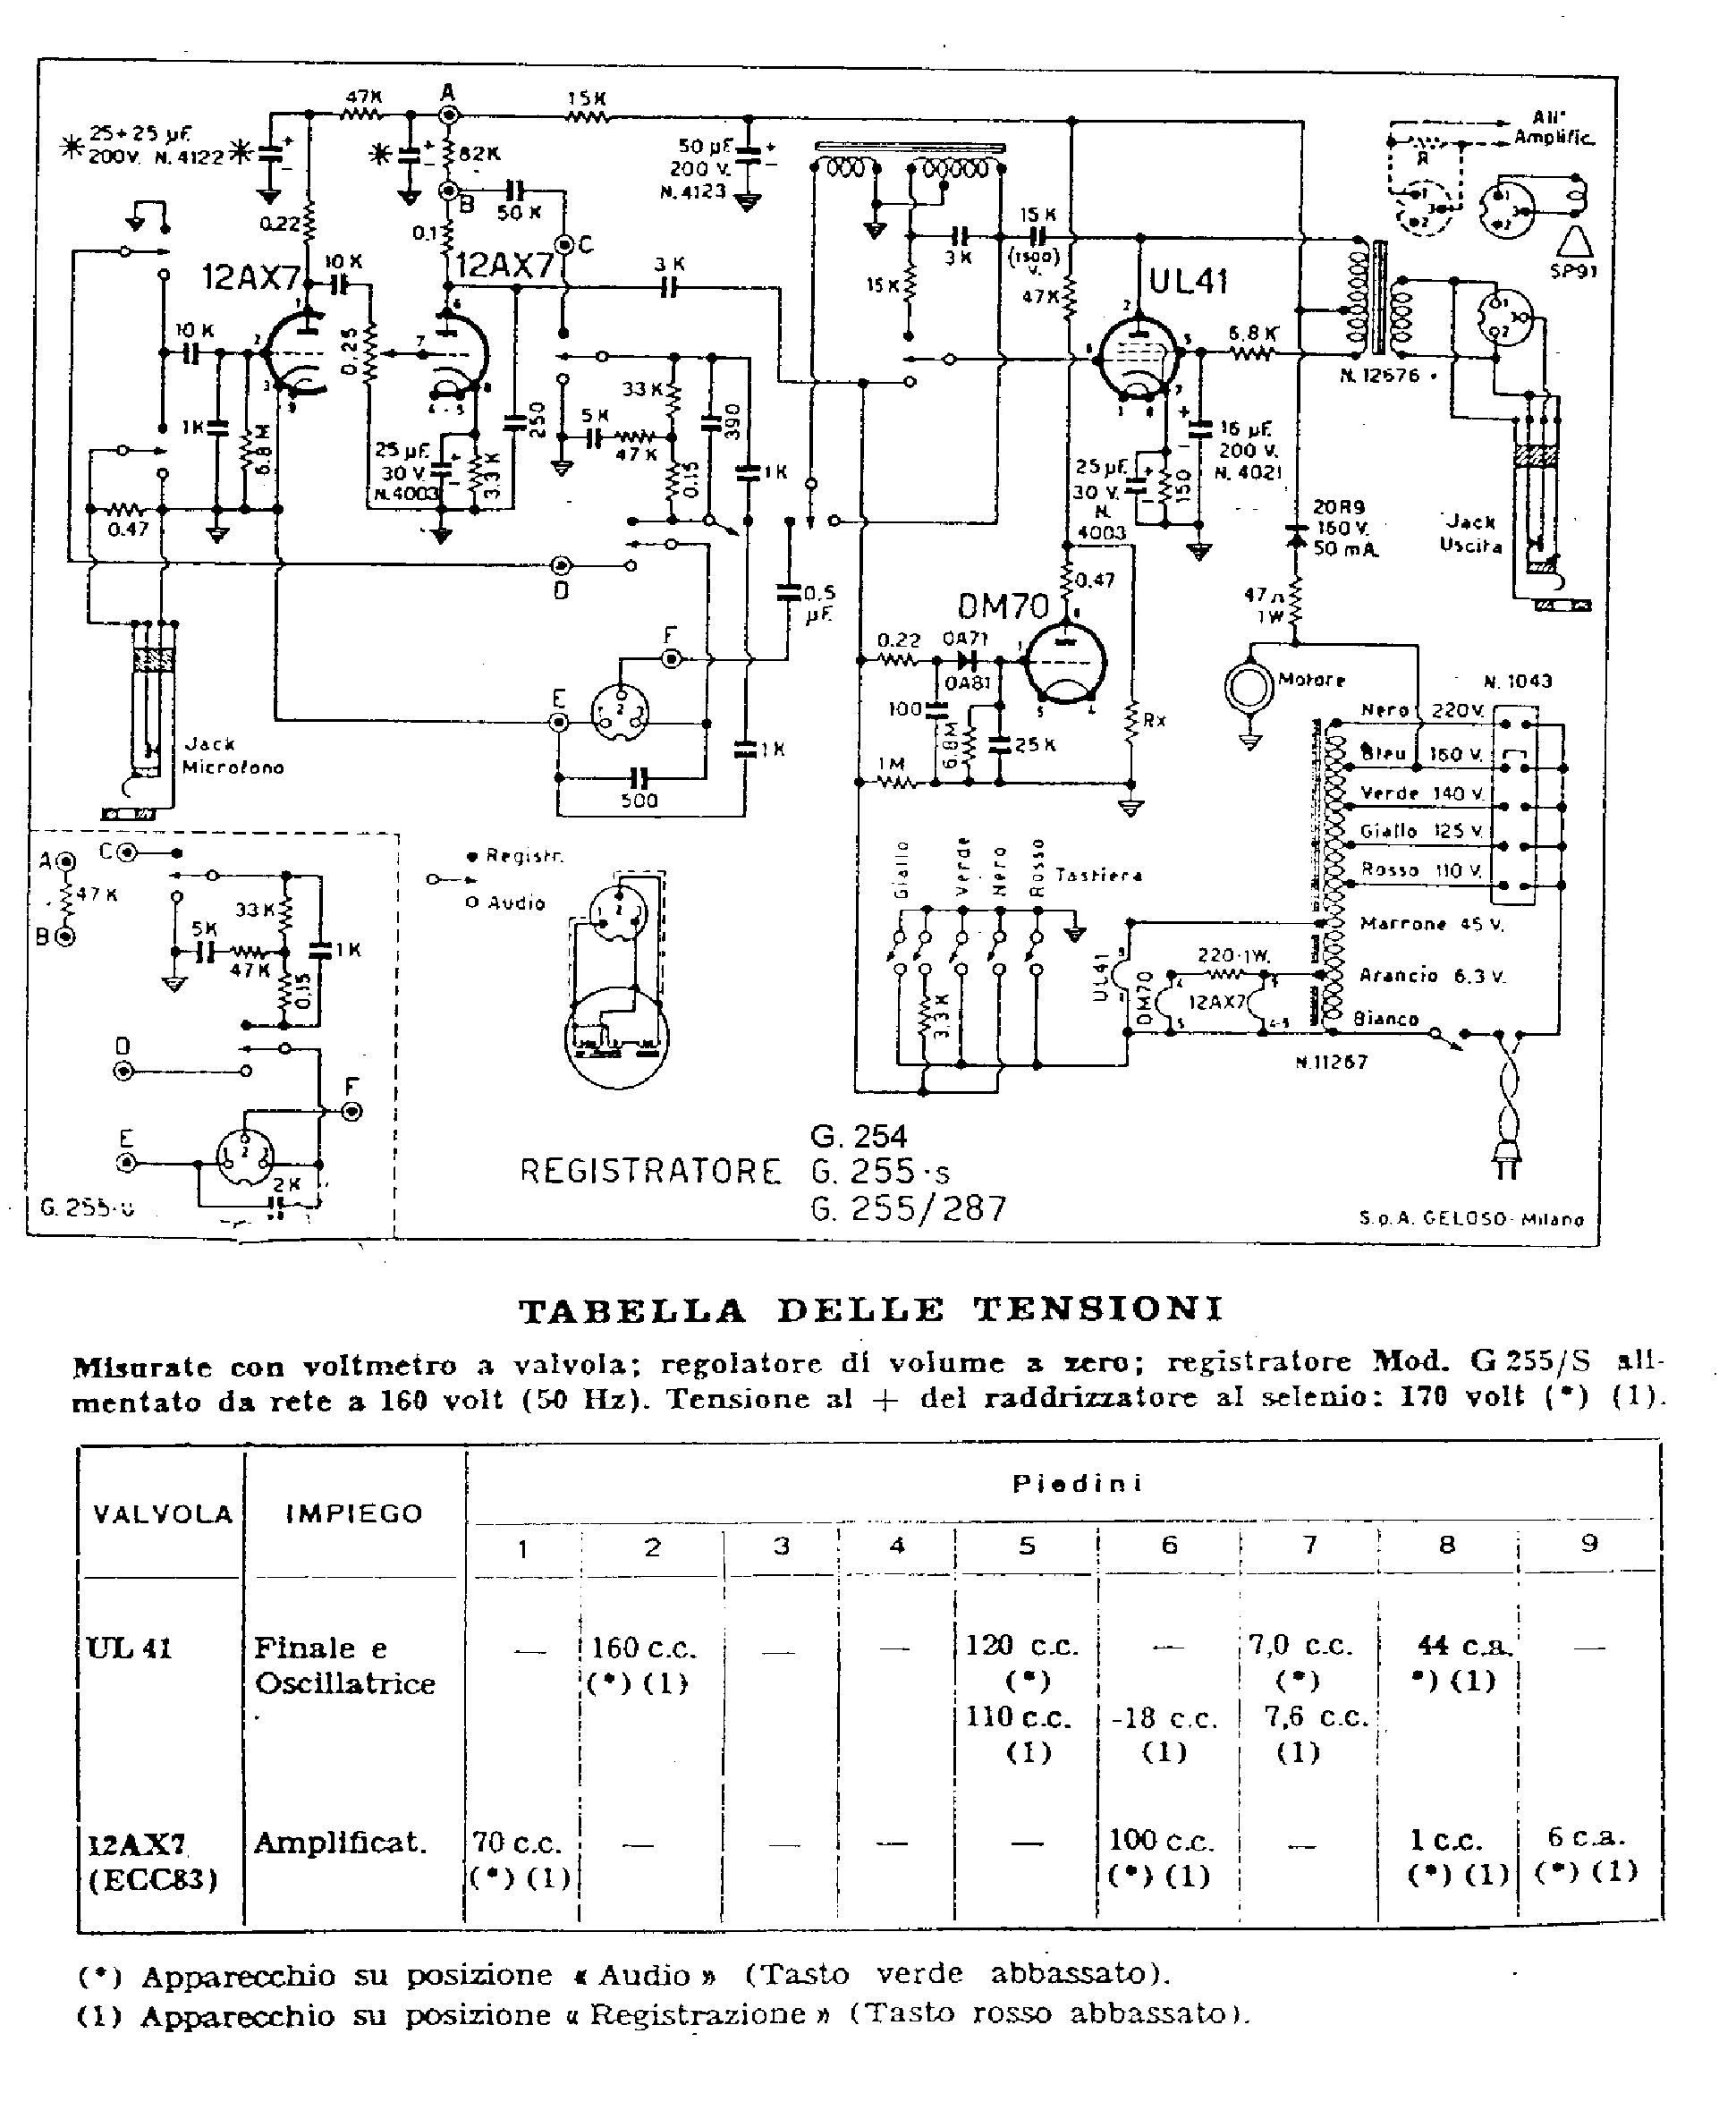 GELOSO G255 Service Manual download, schematics, eeprom